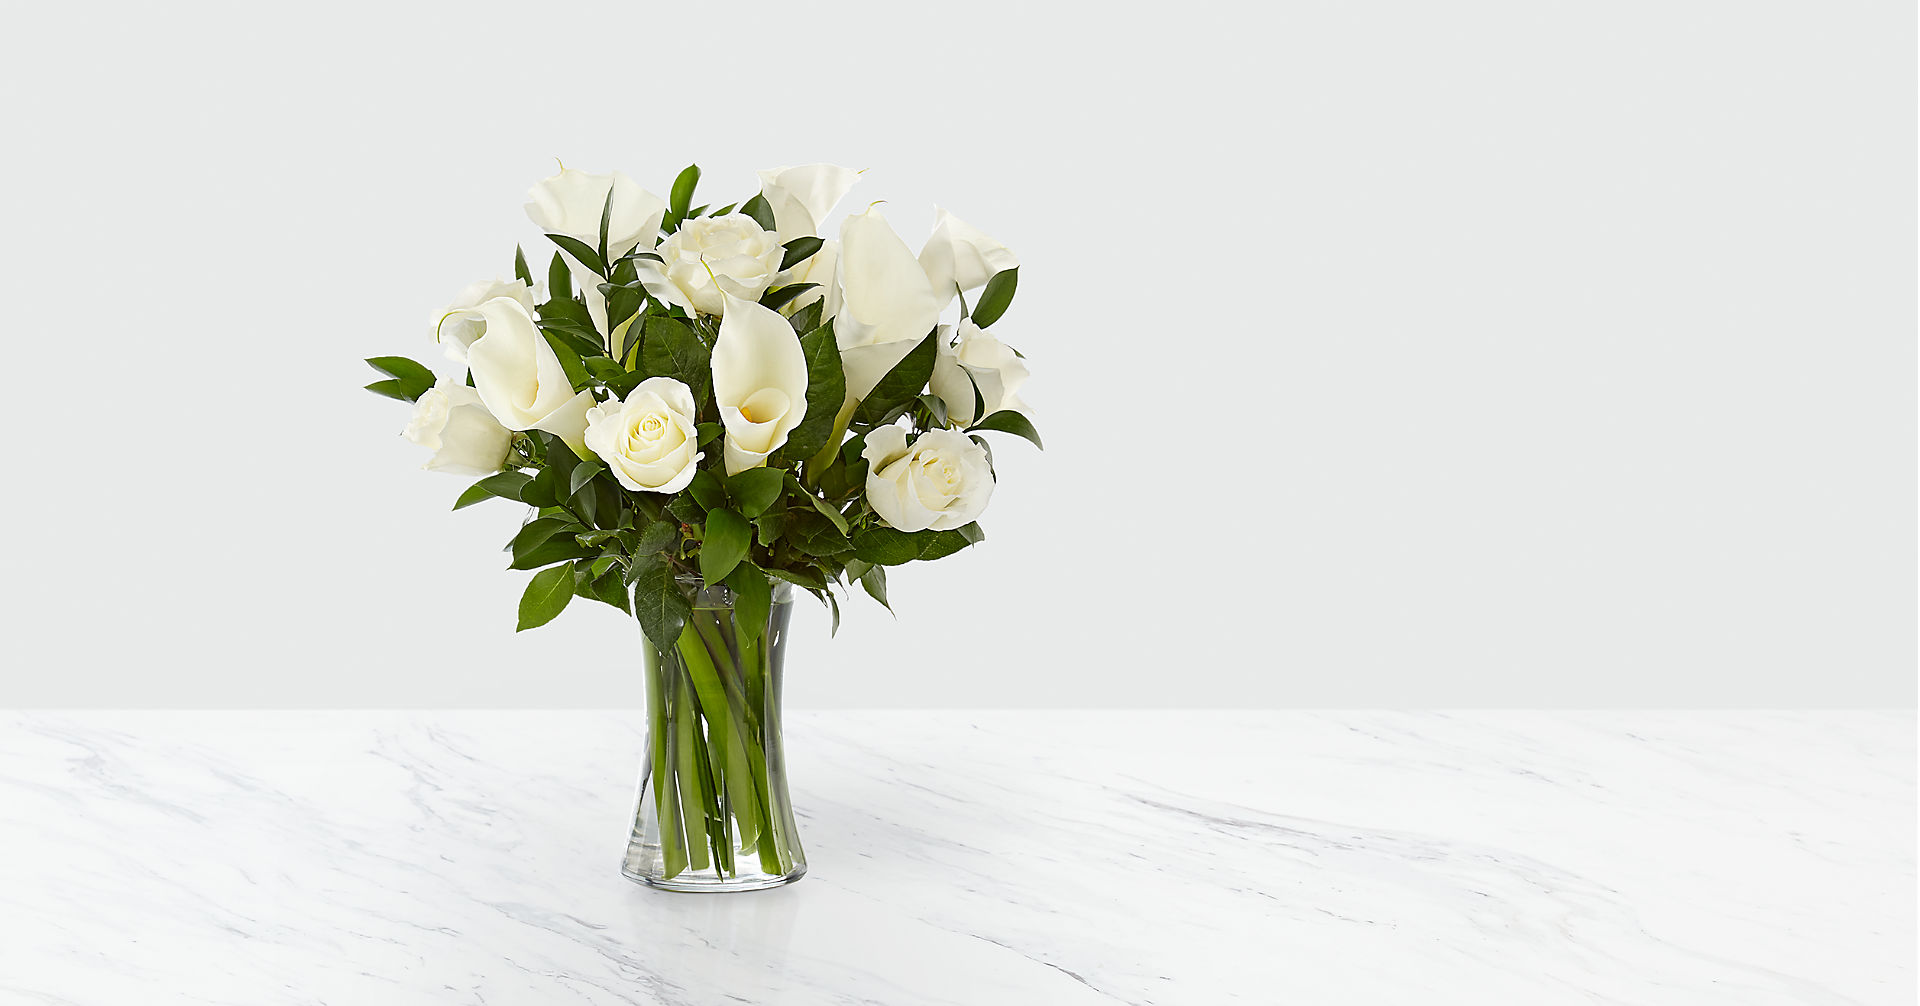 Endless Elegance Bouquet - VASE INCLUDED - Image 1 Of 5